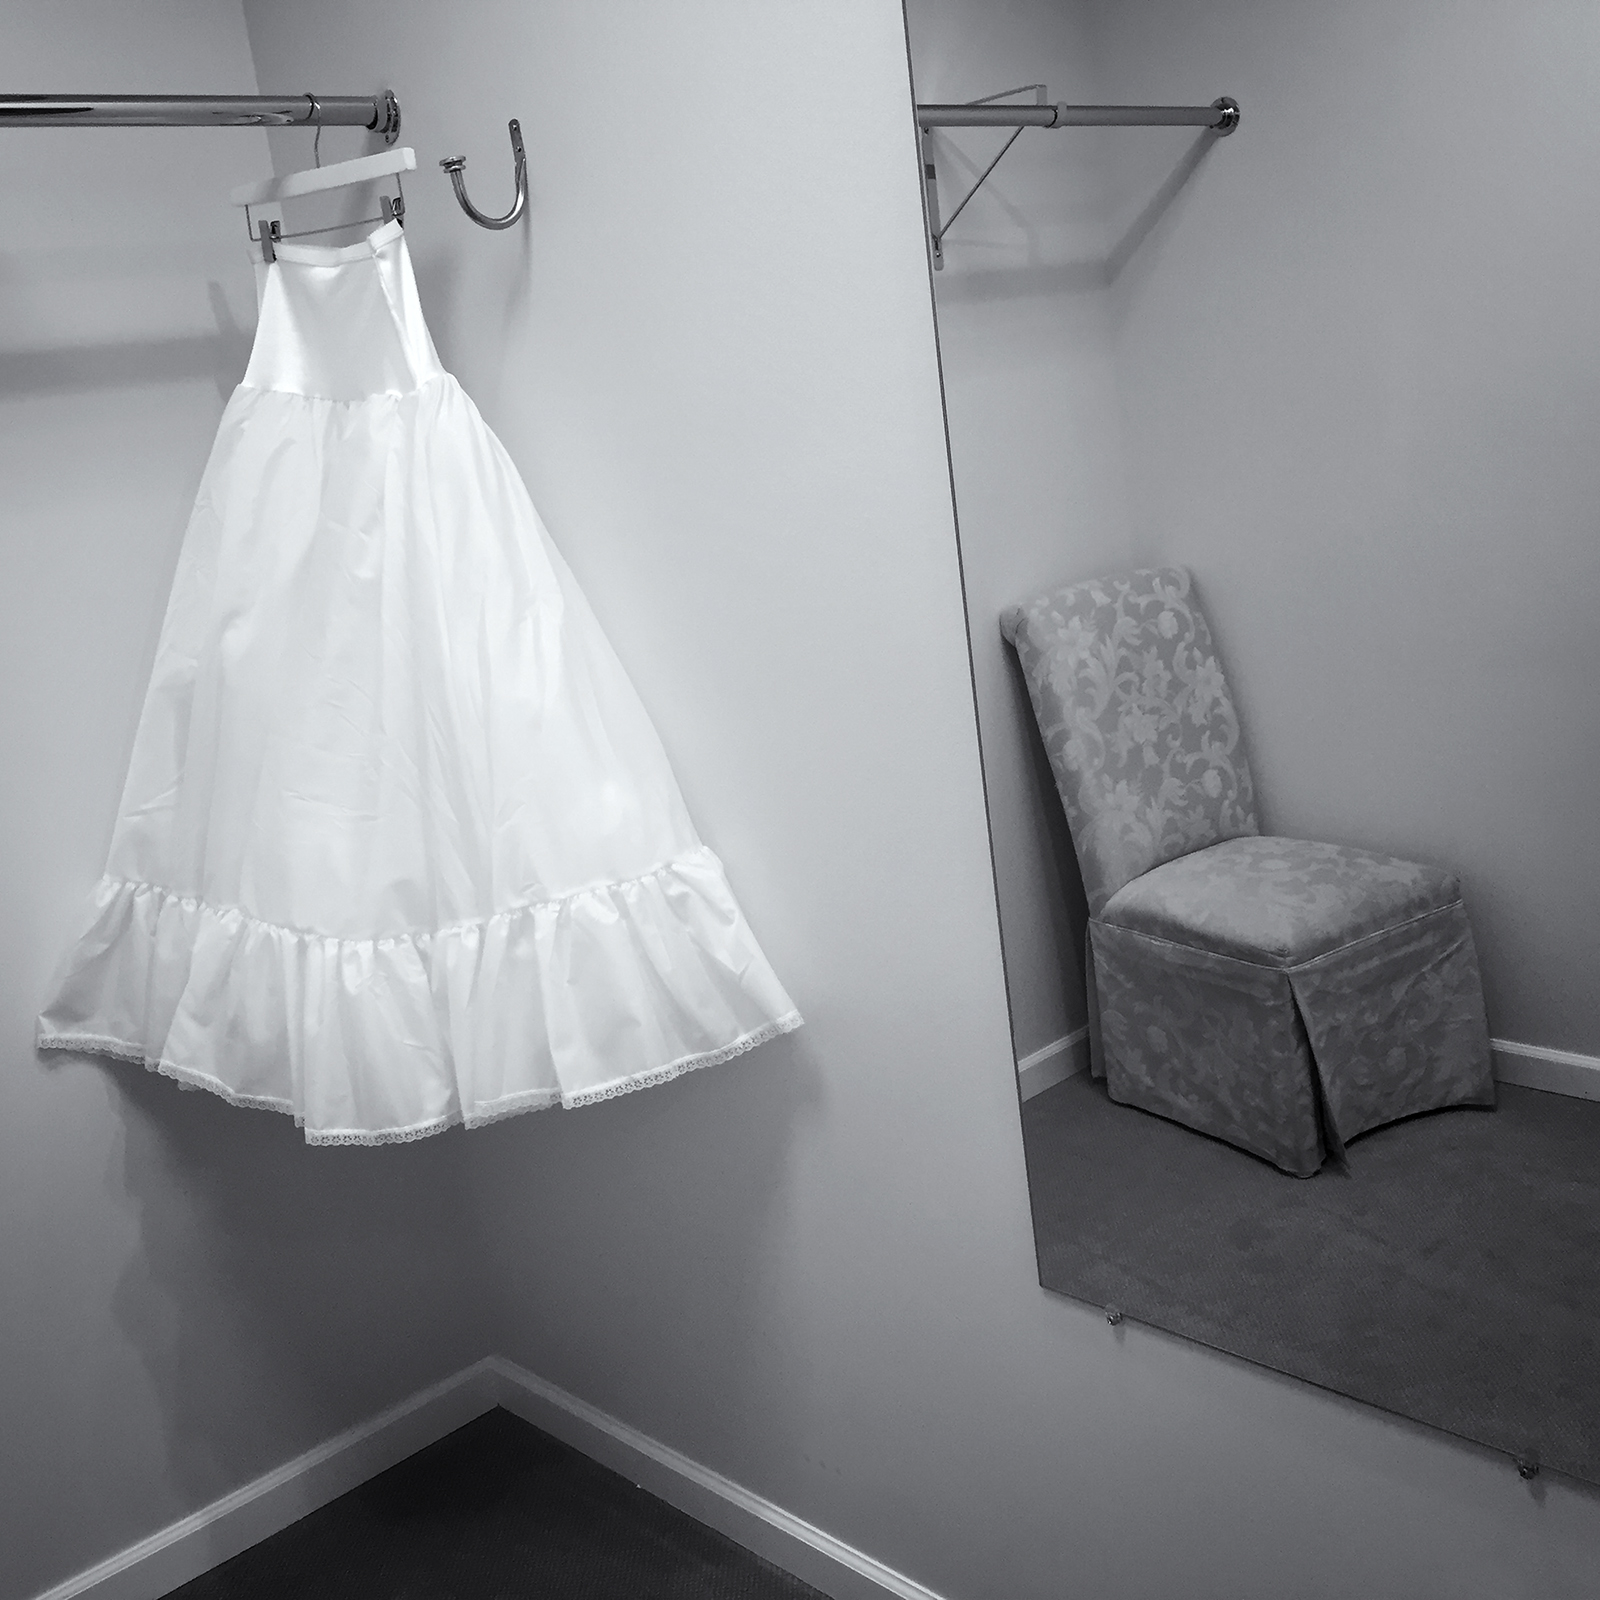 Prom Dressing Room. Denver, Colorado, 2016